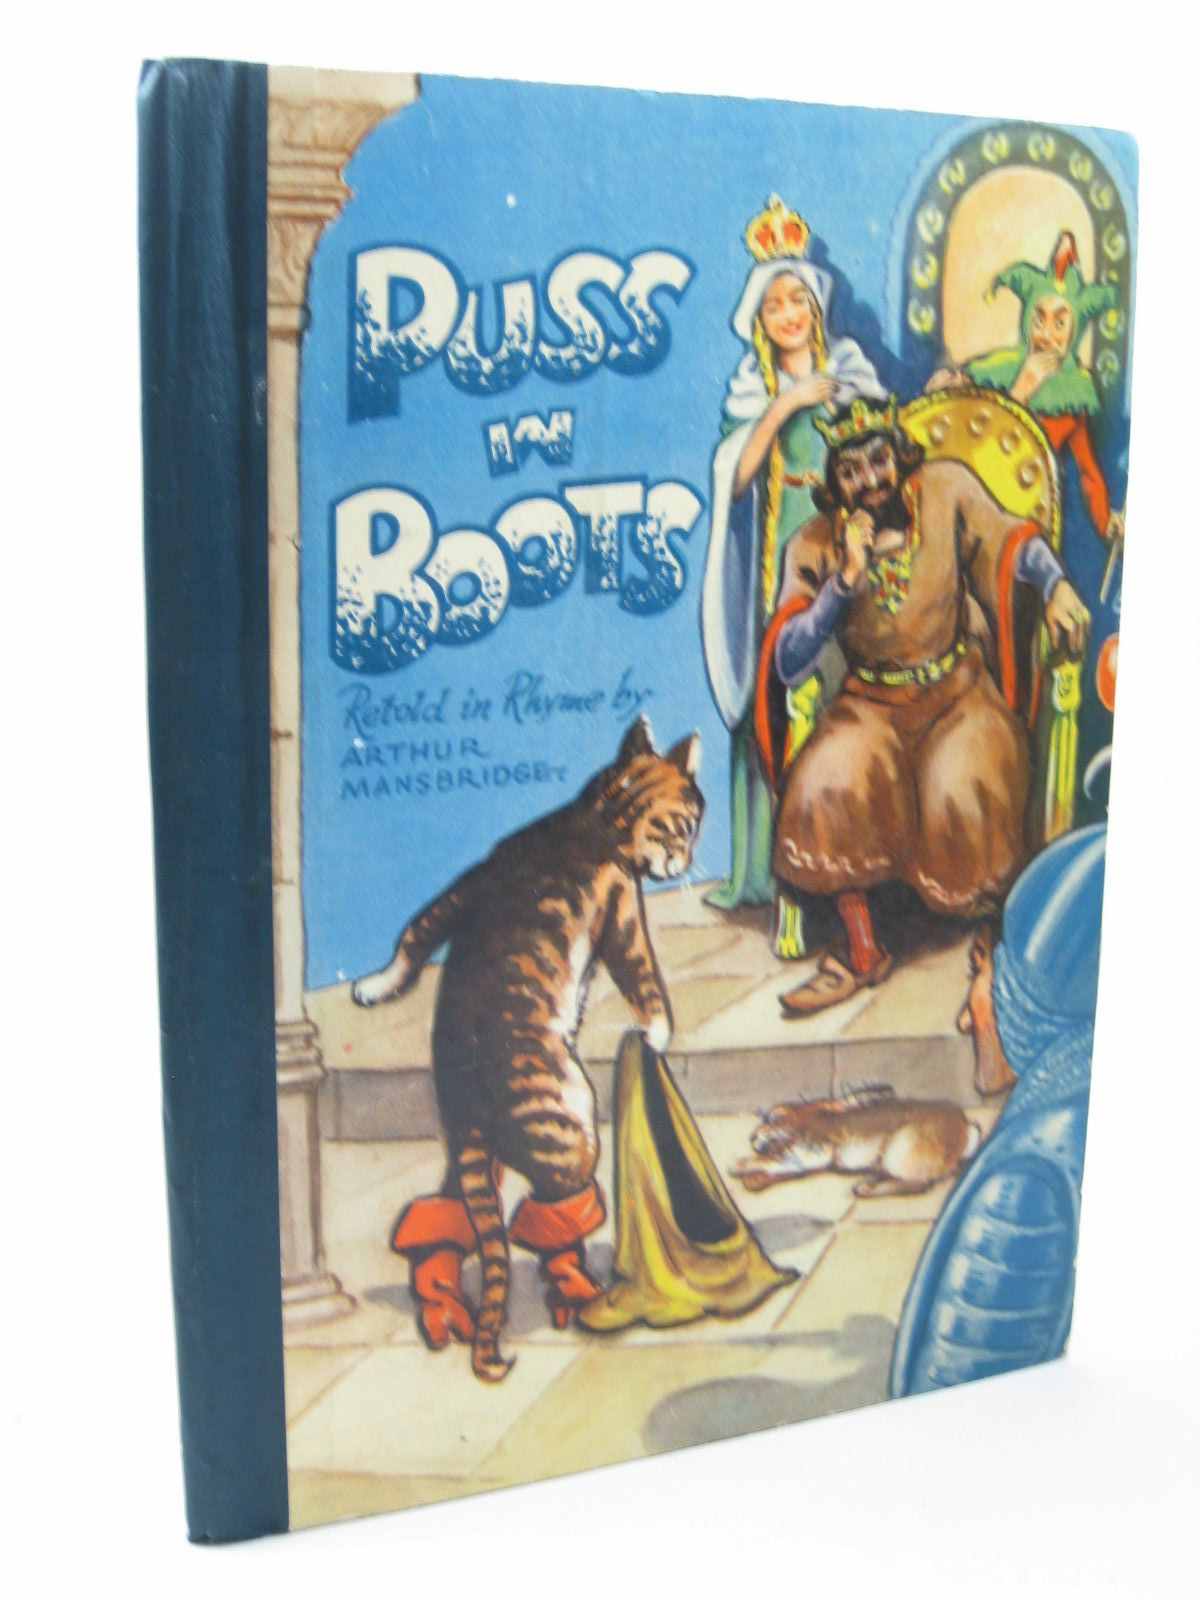 Photo of PUSS IN BOOTS written by Mansbridge, Arthur published by Renwick of Otley (STOCK CODE: 1312072)  for sale by Stella & Rose's Books